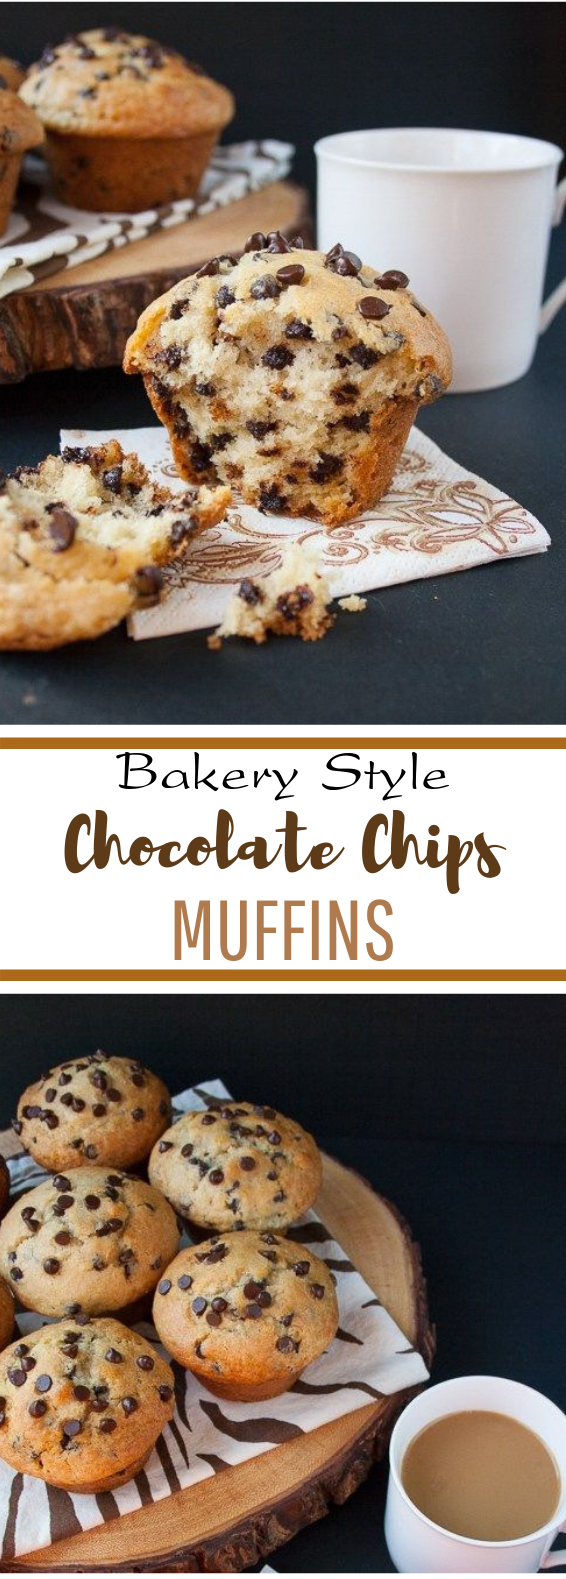 Bakery Style Chocolate Chip Muffins #chocolate #dessert